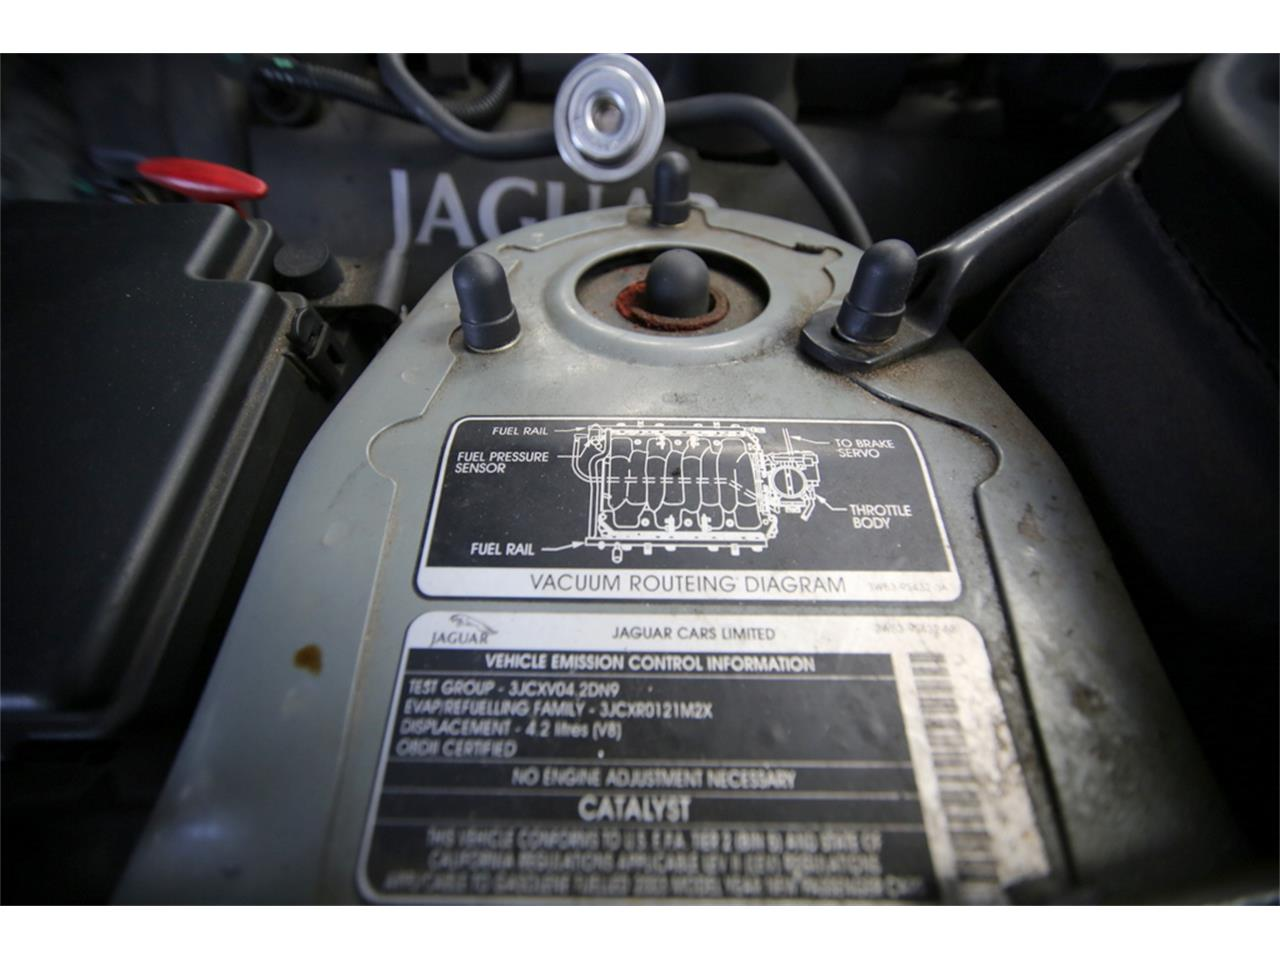 2003 Jaguar Xk8 For Sale Cc 1004008 Engine Diagram Large Picture Of 03 Lip4